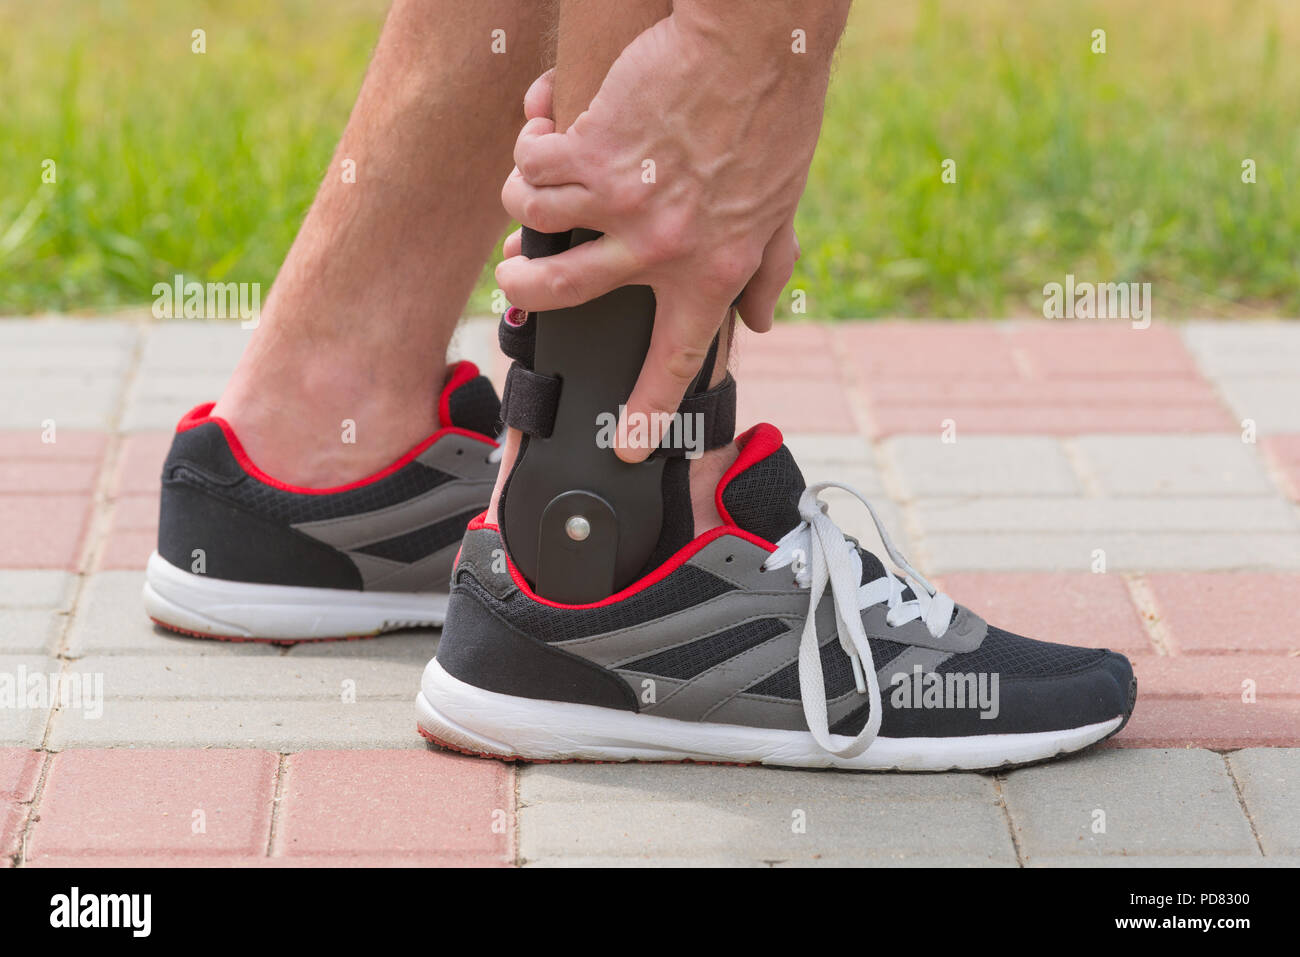 Man in athletic sneakers wearing ankle orthosis or brace - Stock Image